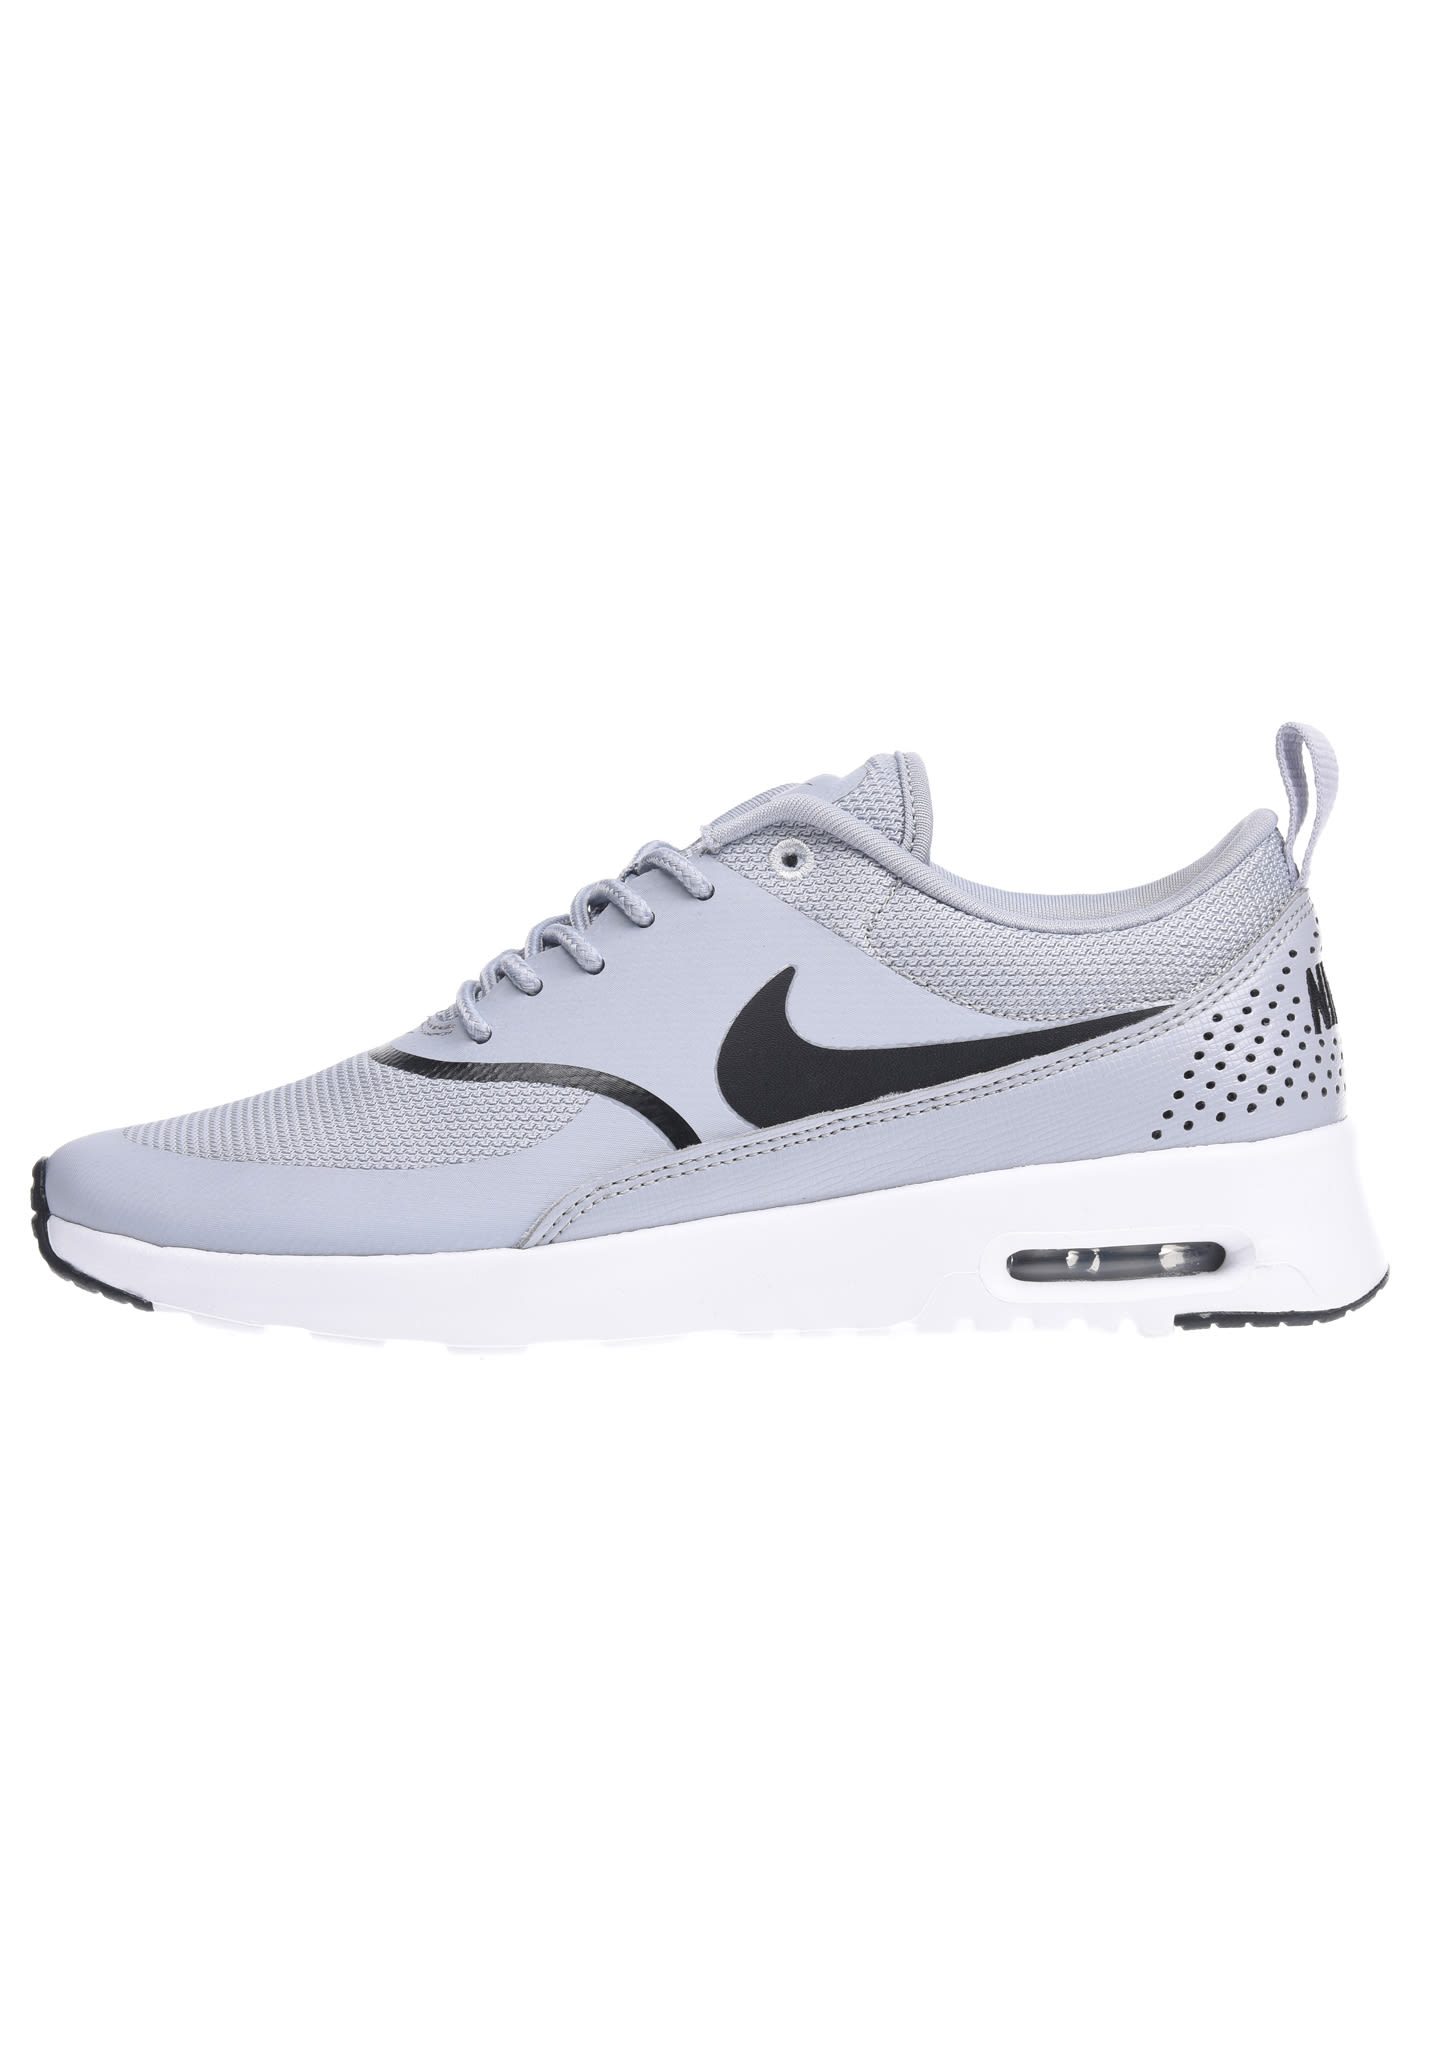 timeless design fe86c b3390 NIKE SPORTSWEAR Air Max Thea - Baskets pour Femme - Gris - Planet Sports